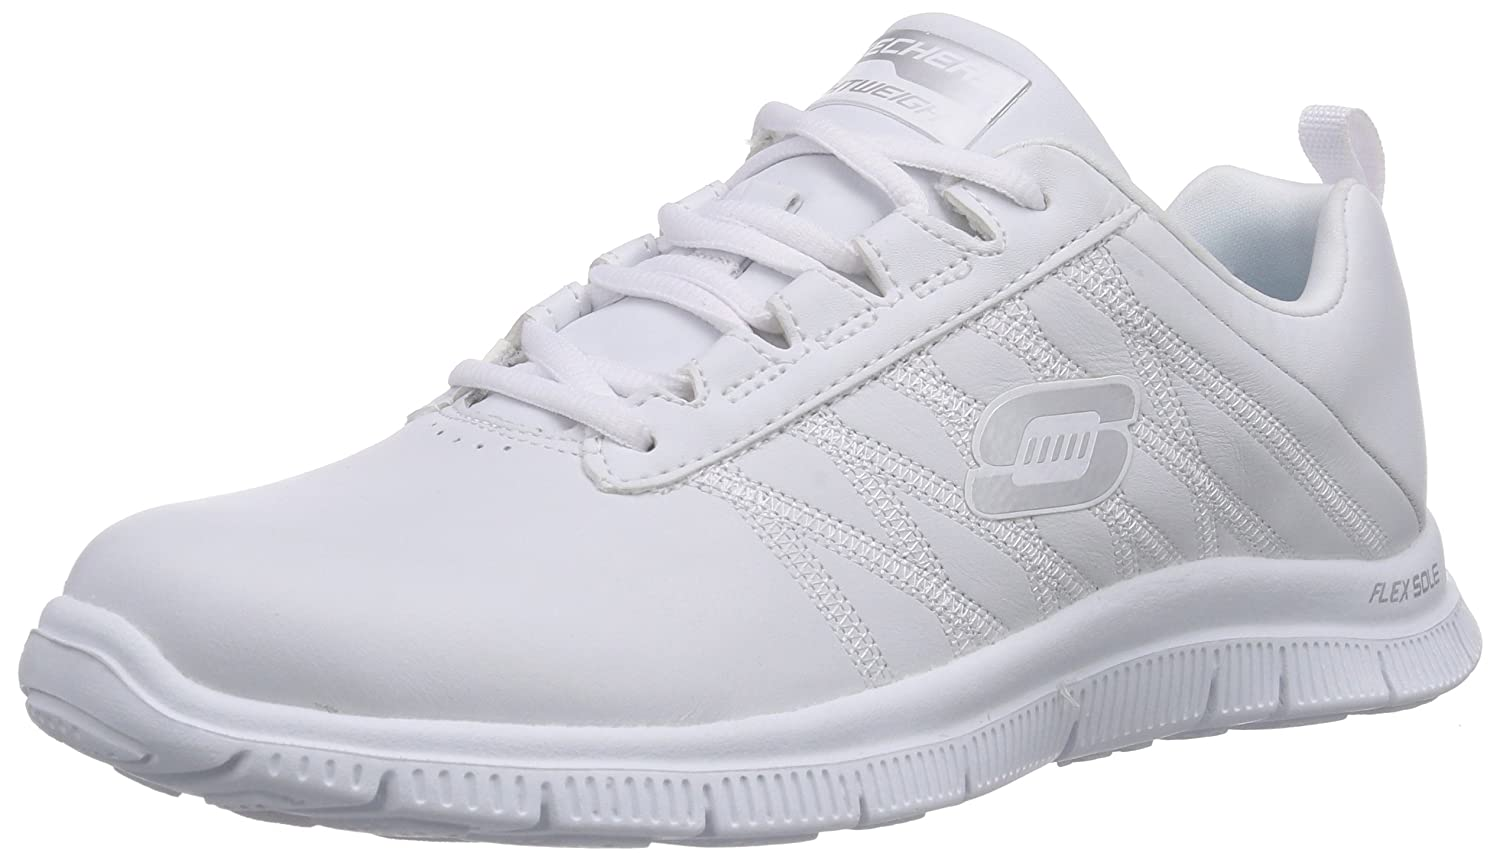 Skechers Flex Appeal Pure Tone Damen Turnschuhe